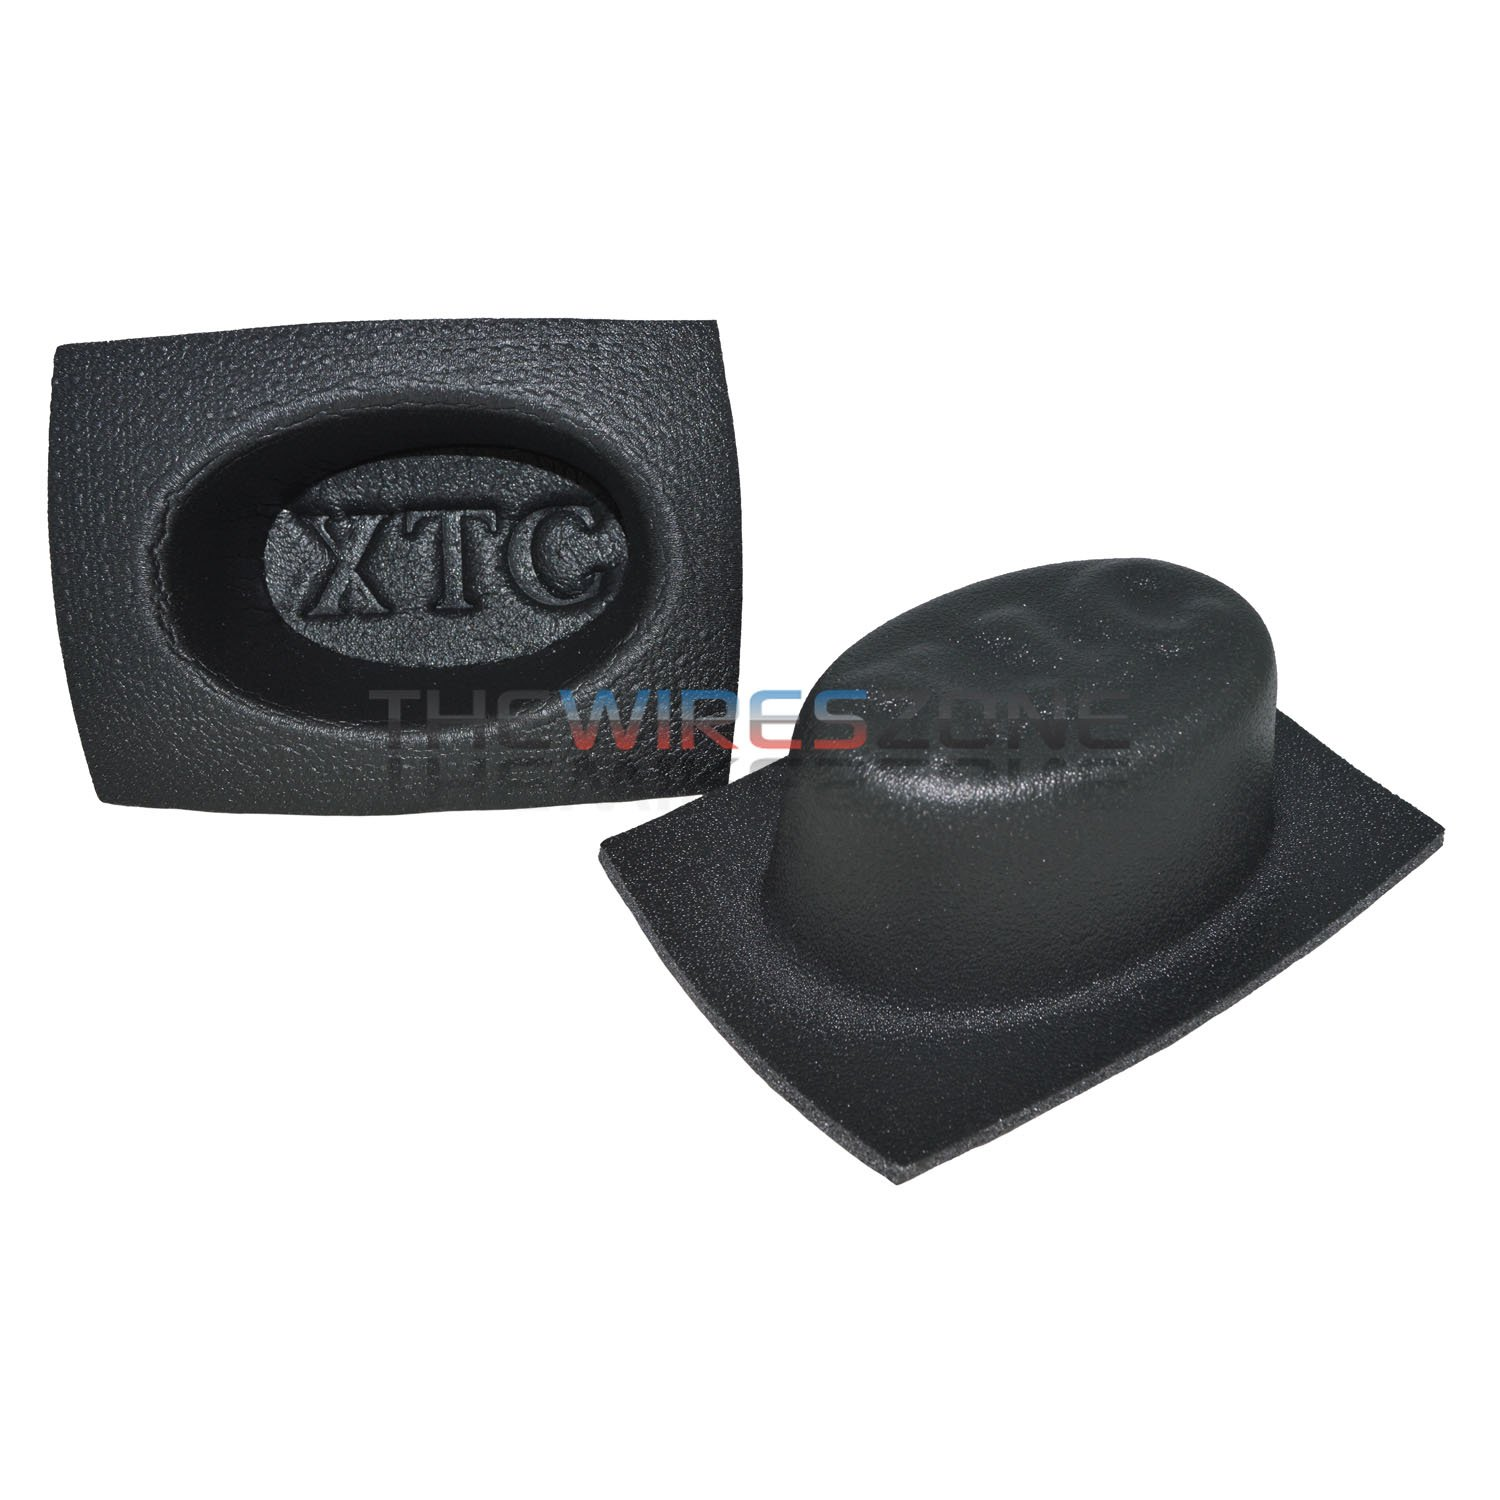 The Install Bay VXT46 XTC Universal 4'' x 6'' Foam Speaker Acoustic Baffle (pair) by Install Bay